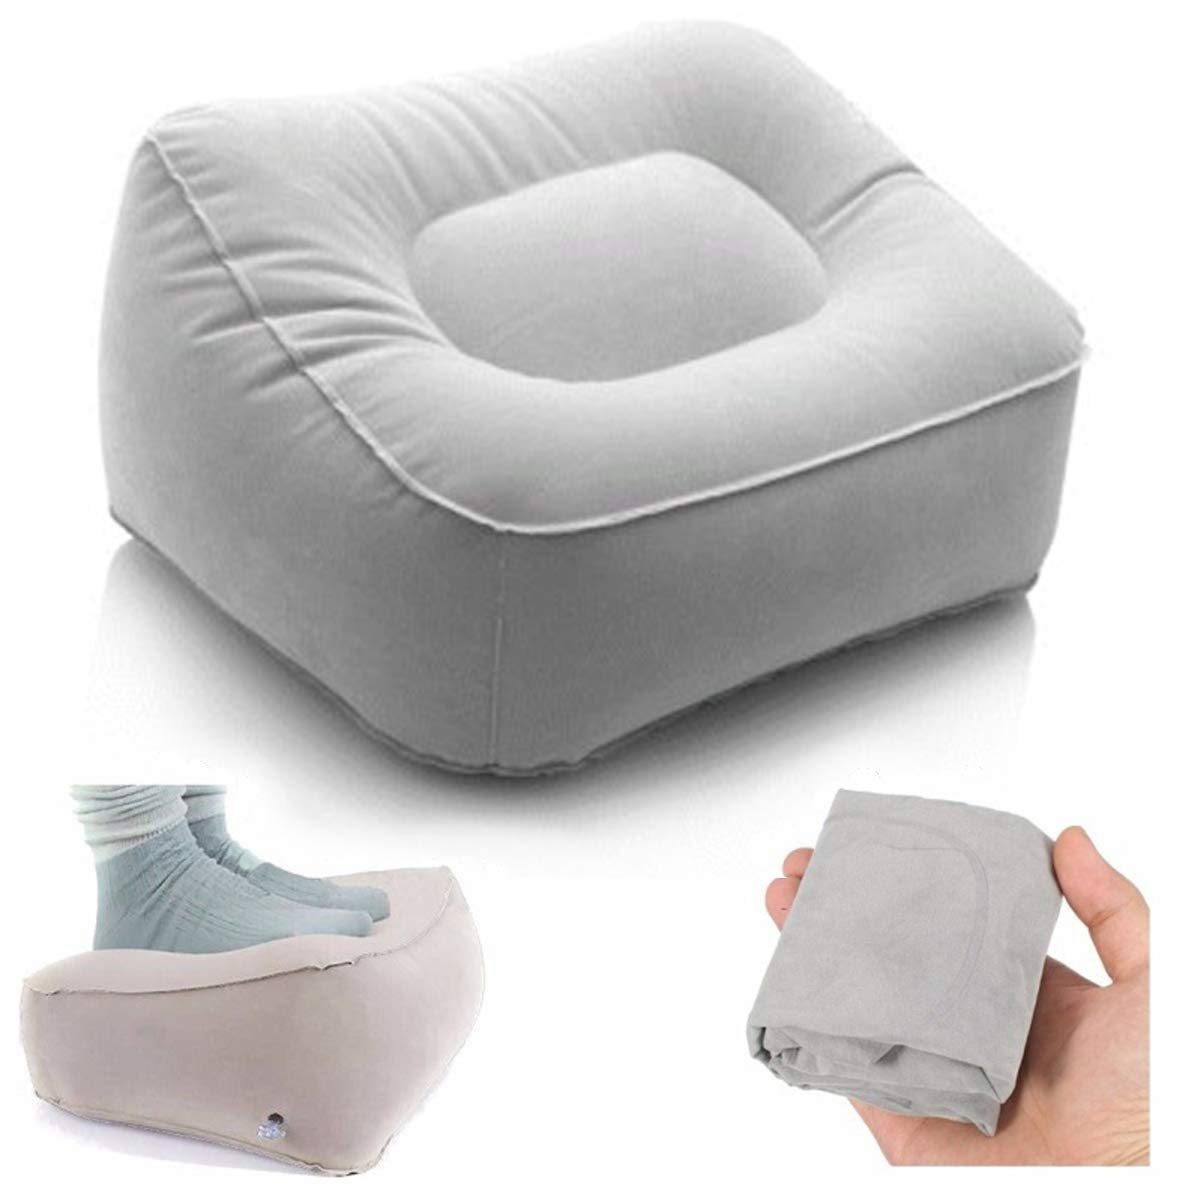 Inflatable Foot Rest Pillow - 2 Pack Leg Up Footrest for Travel Office & Home Relax pillow Cushion 4332456377